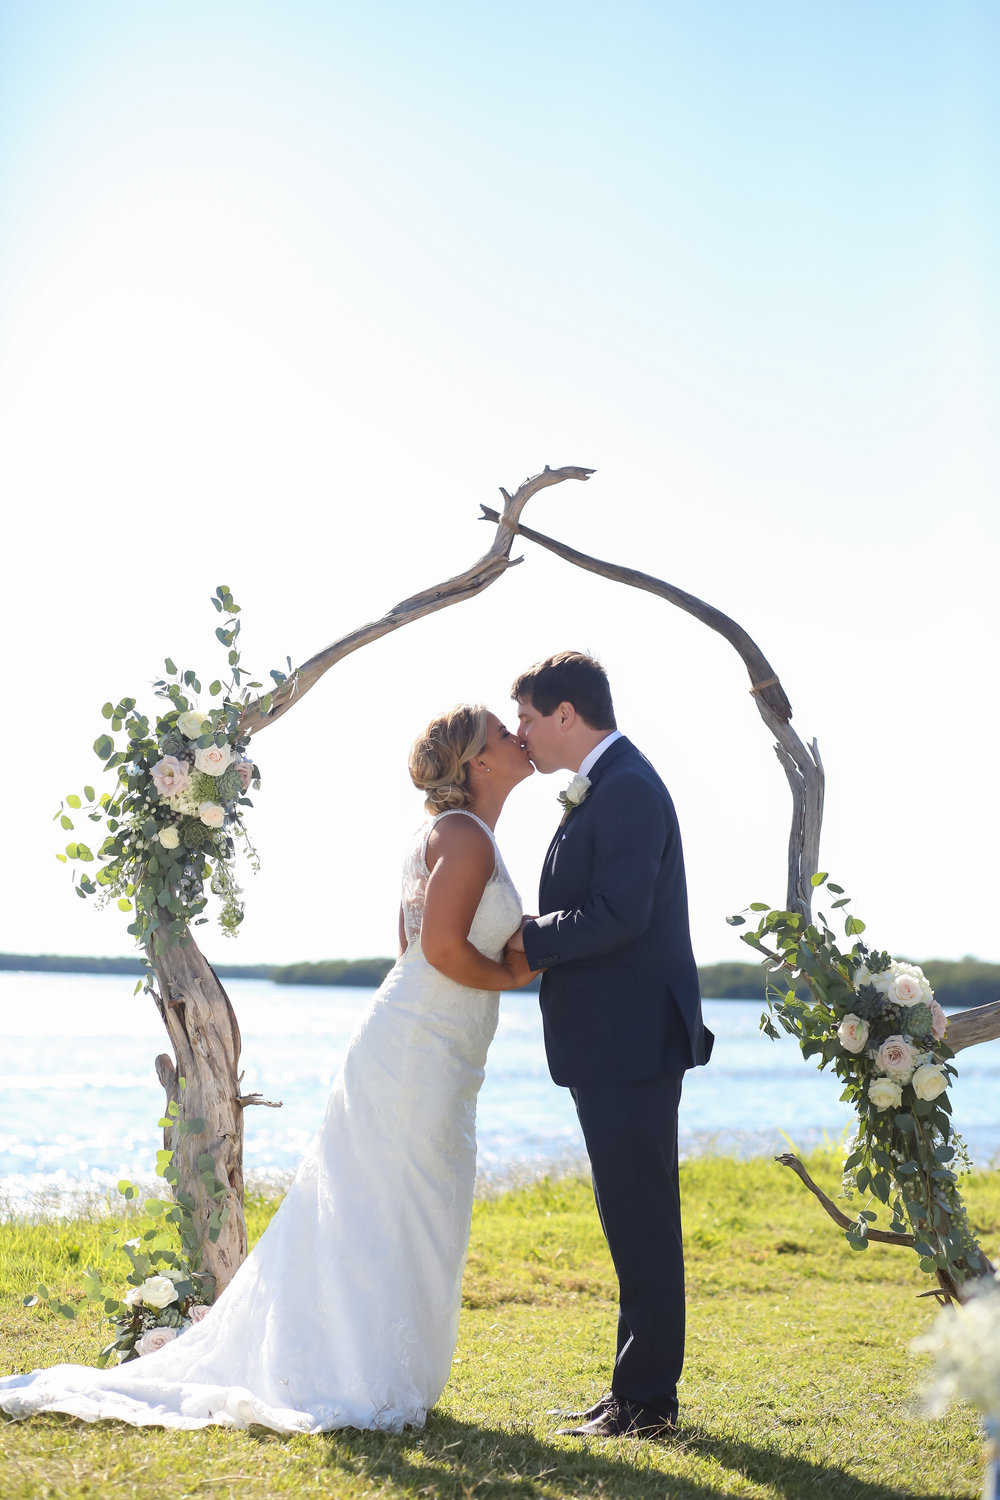 The couple shared a first kiss, overlooking the stunning waterfront view.